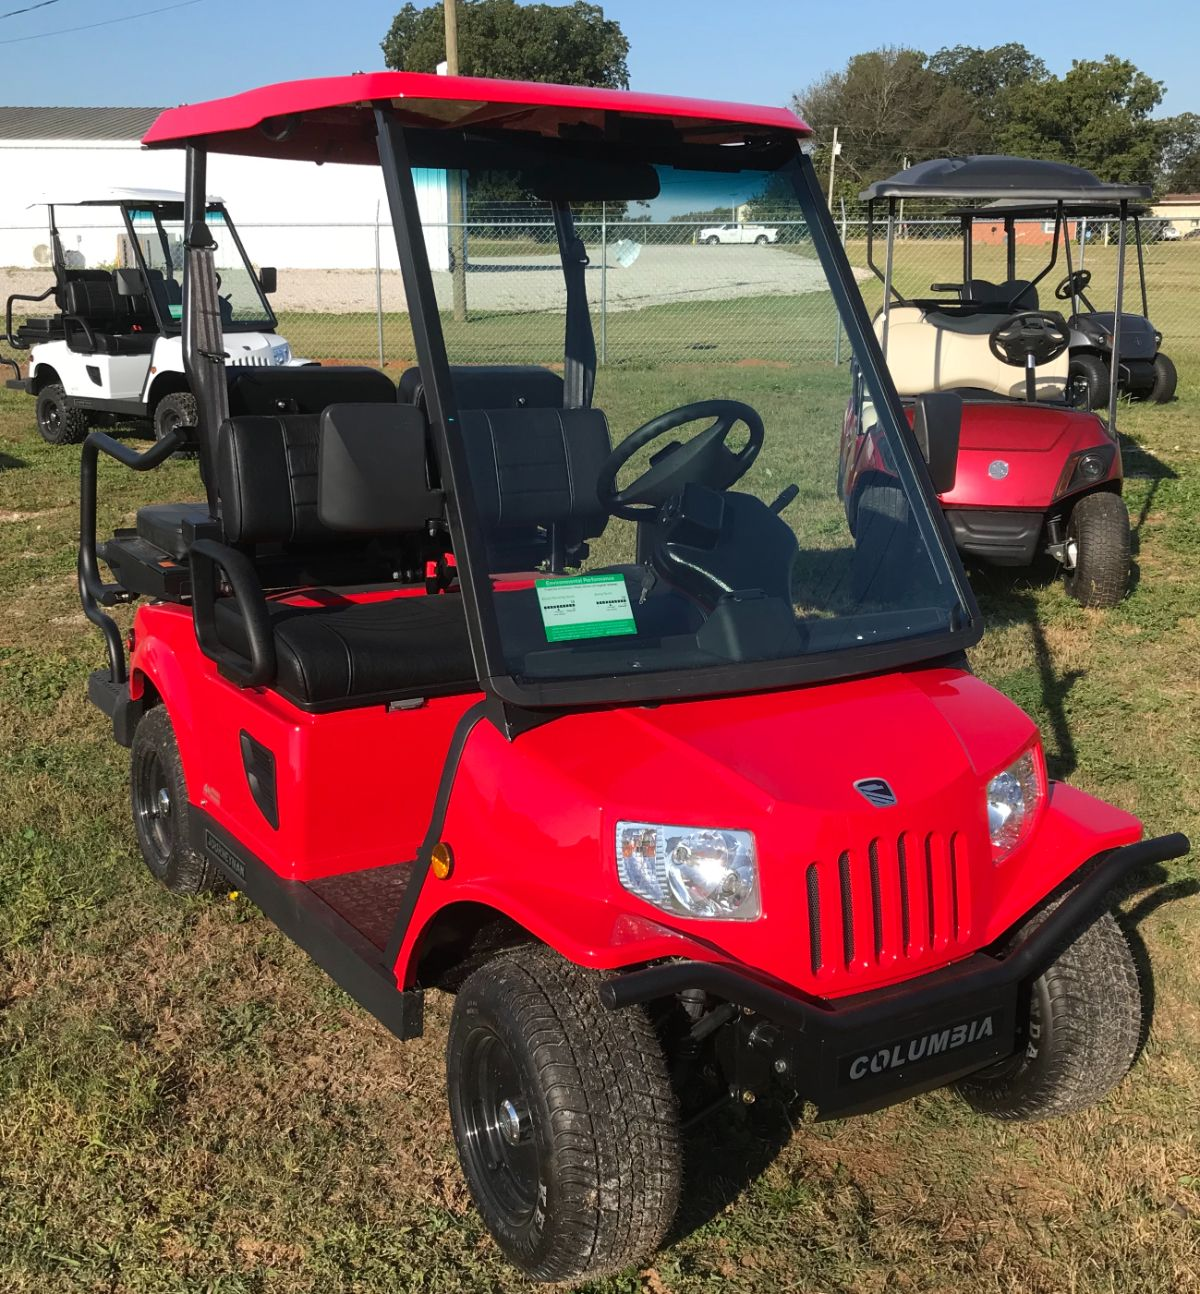 2021 Columbia Journeyman - Street Legal LSV - Red for sale at Lift Service Inc in Alabama